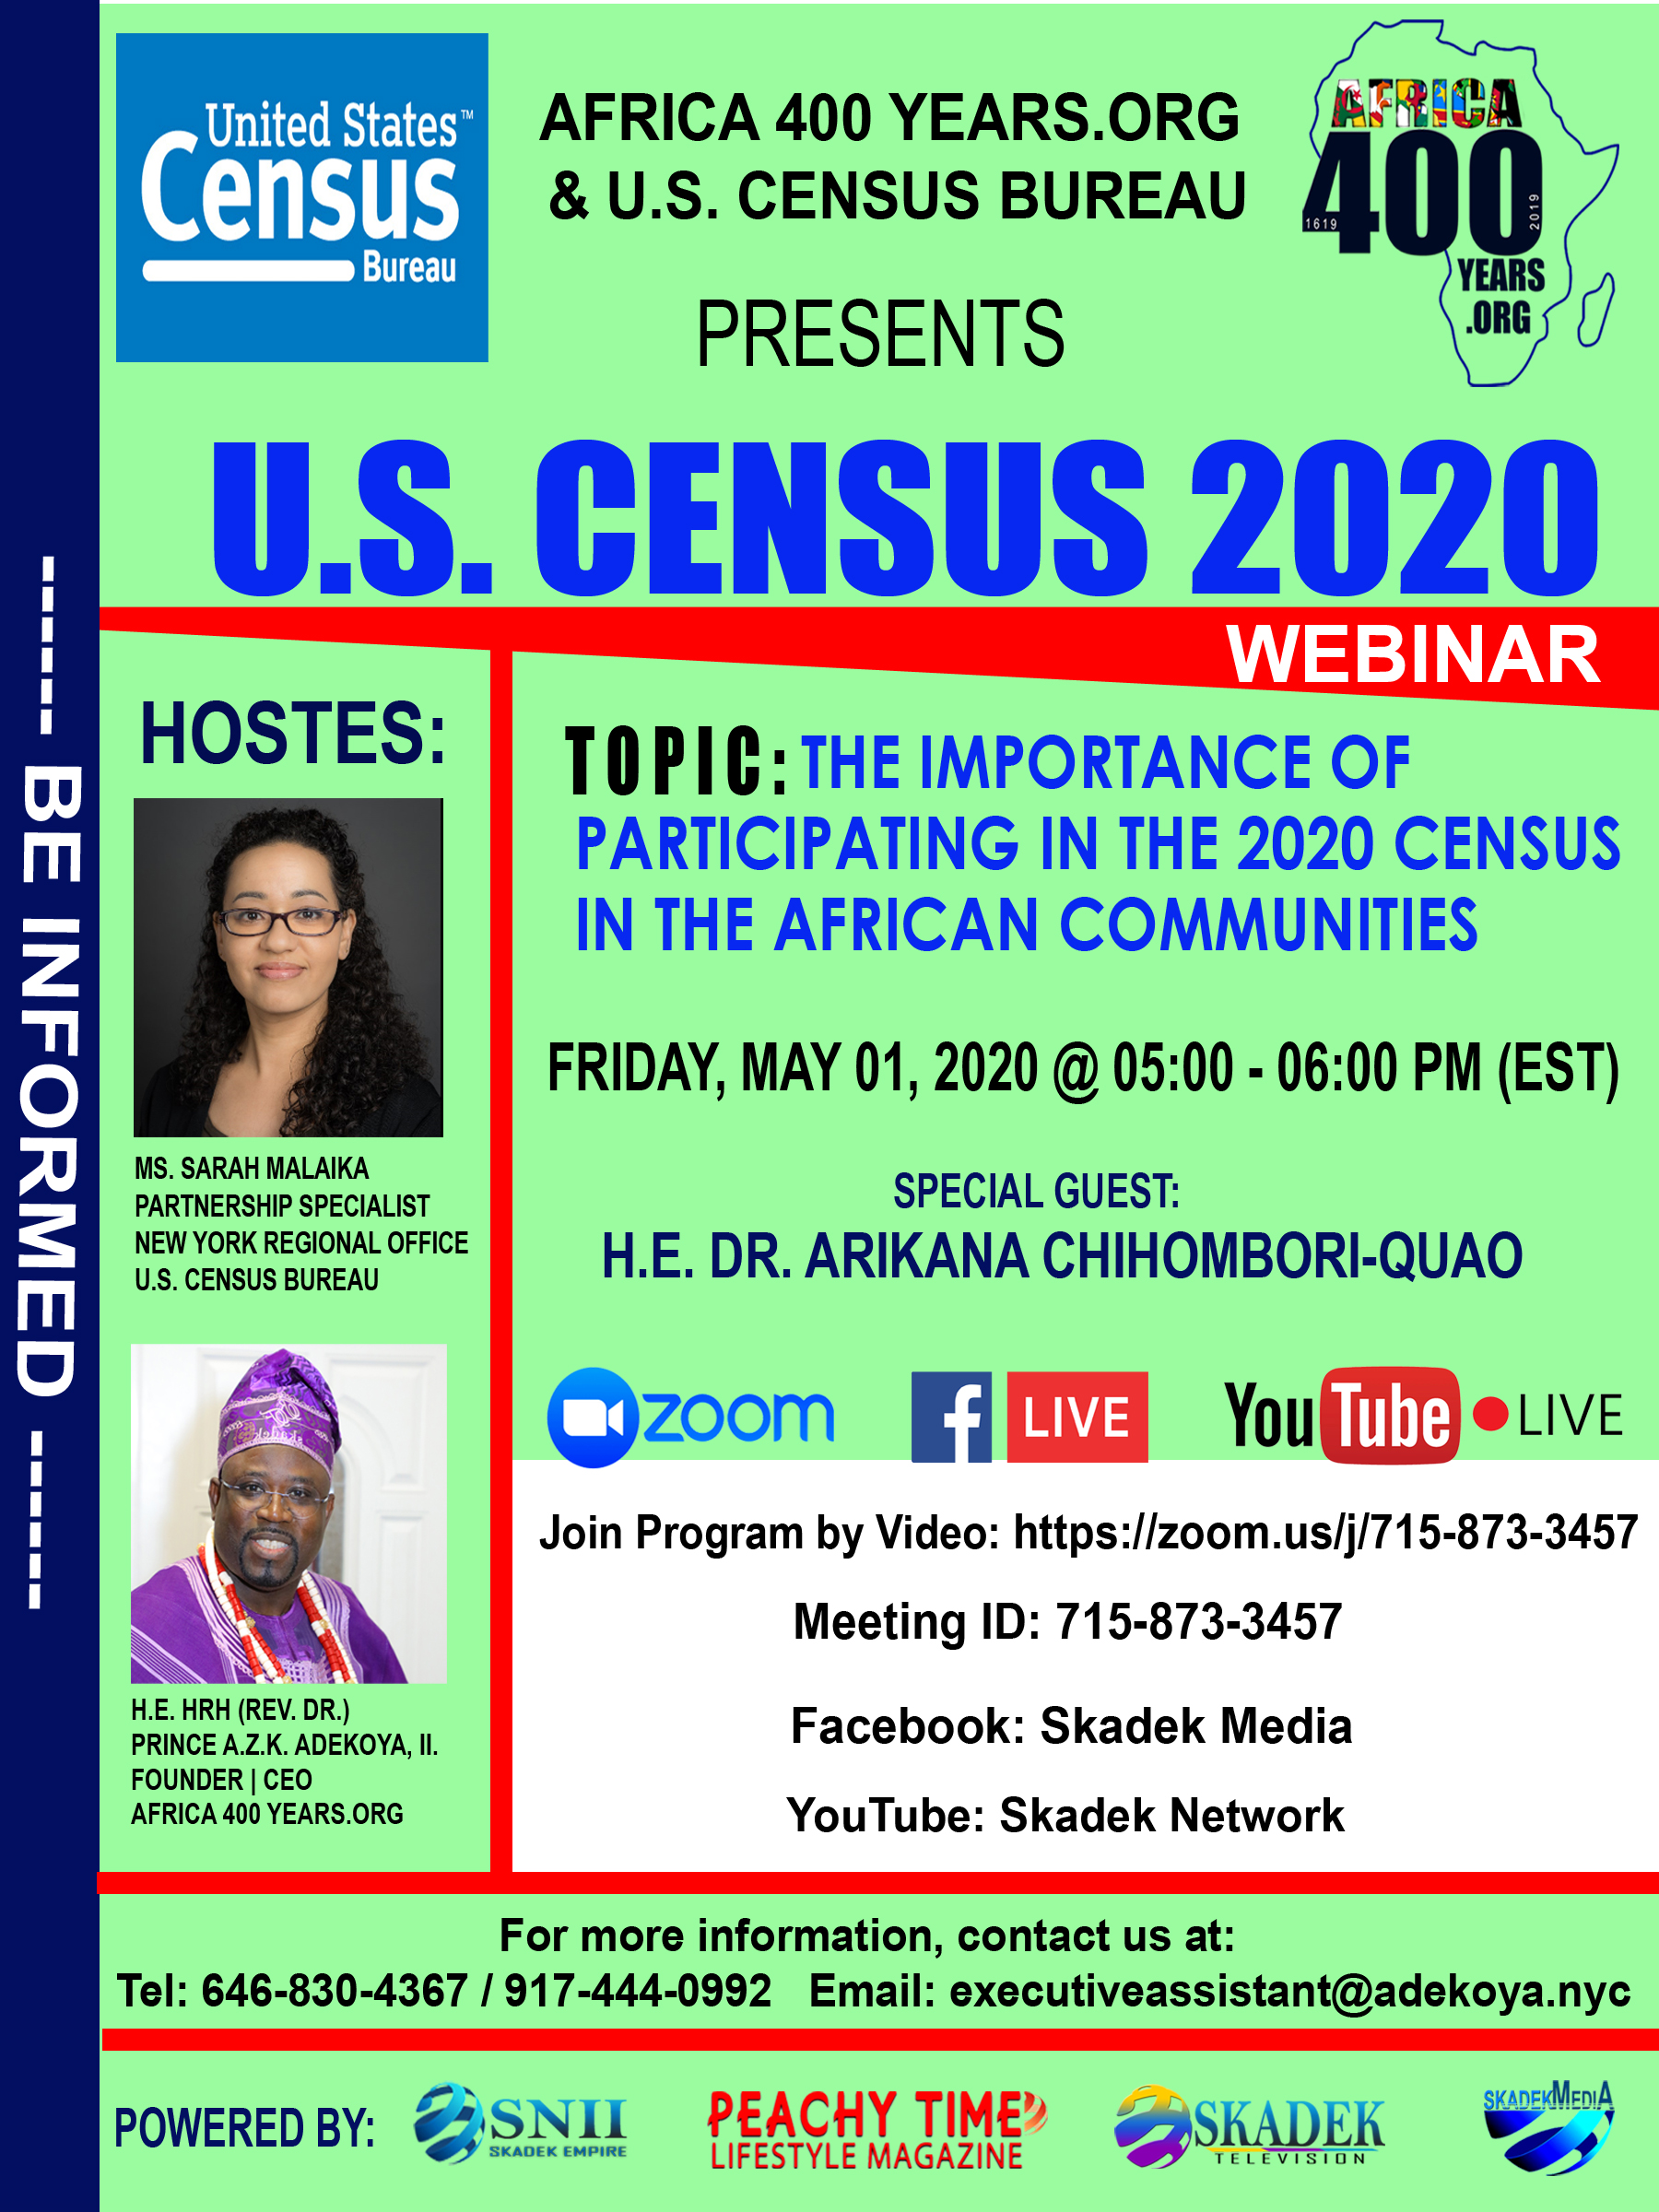 AFRICA 400 YEAR 2020 CENSUS WEBINAR